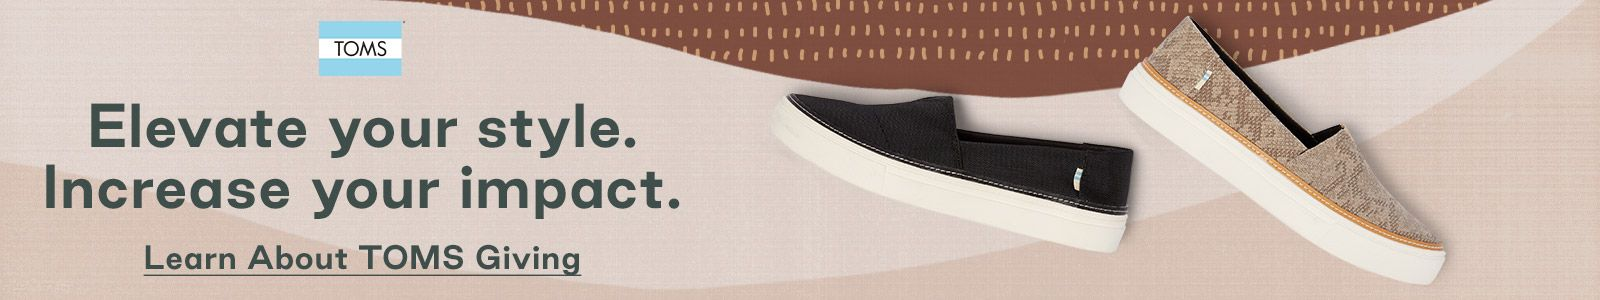 TOMS, Elevate your style, Increase your impact